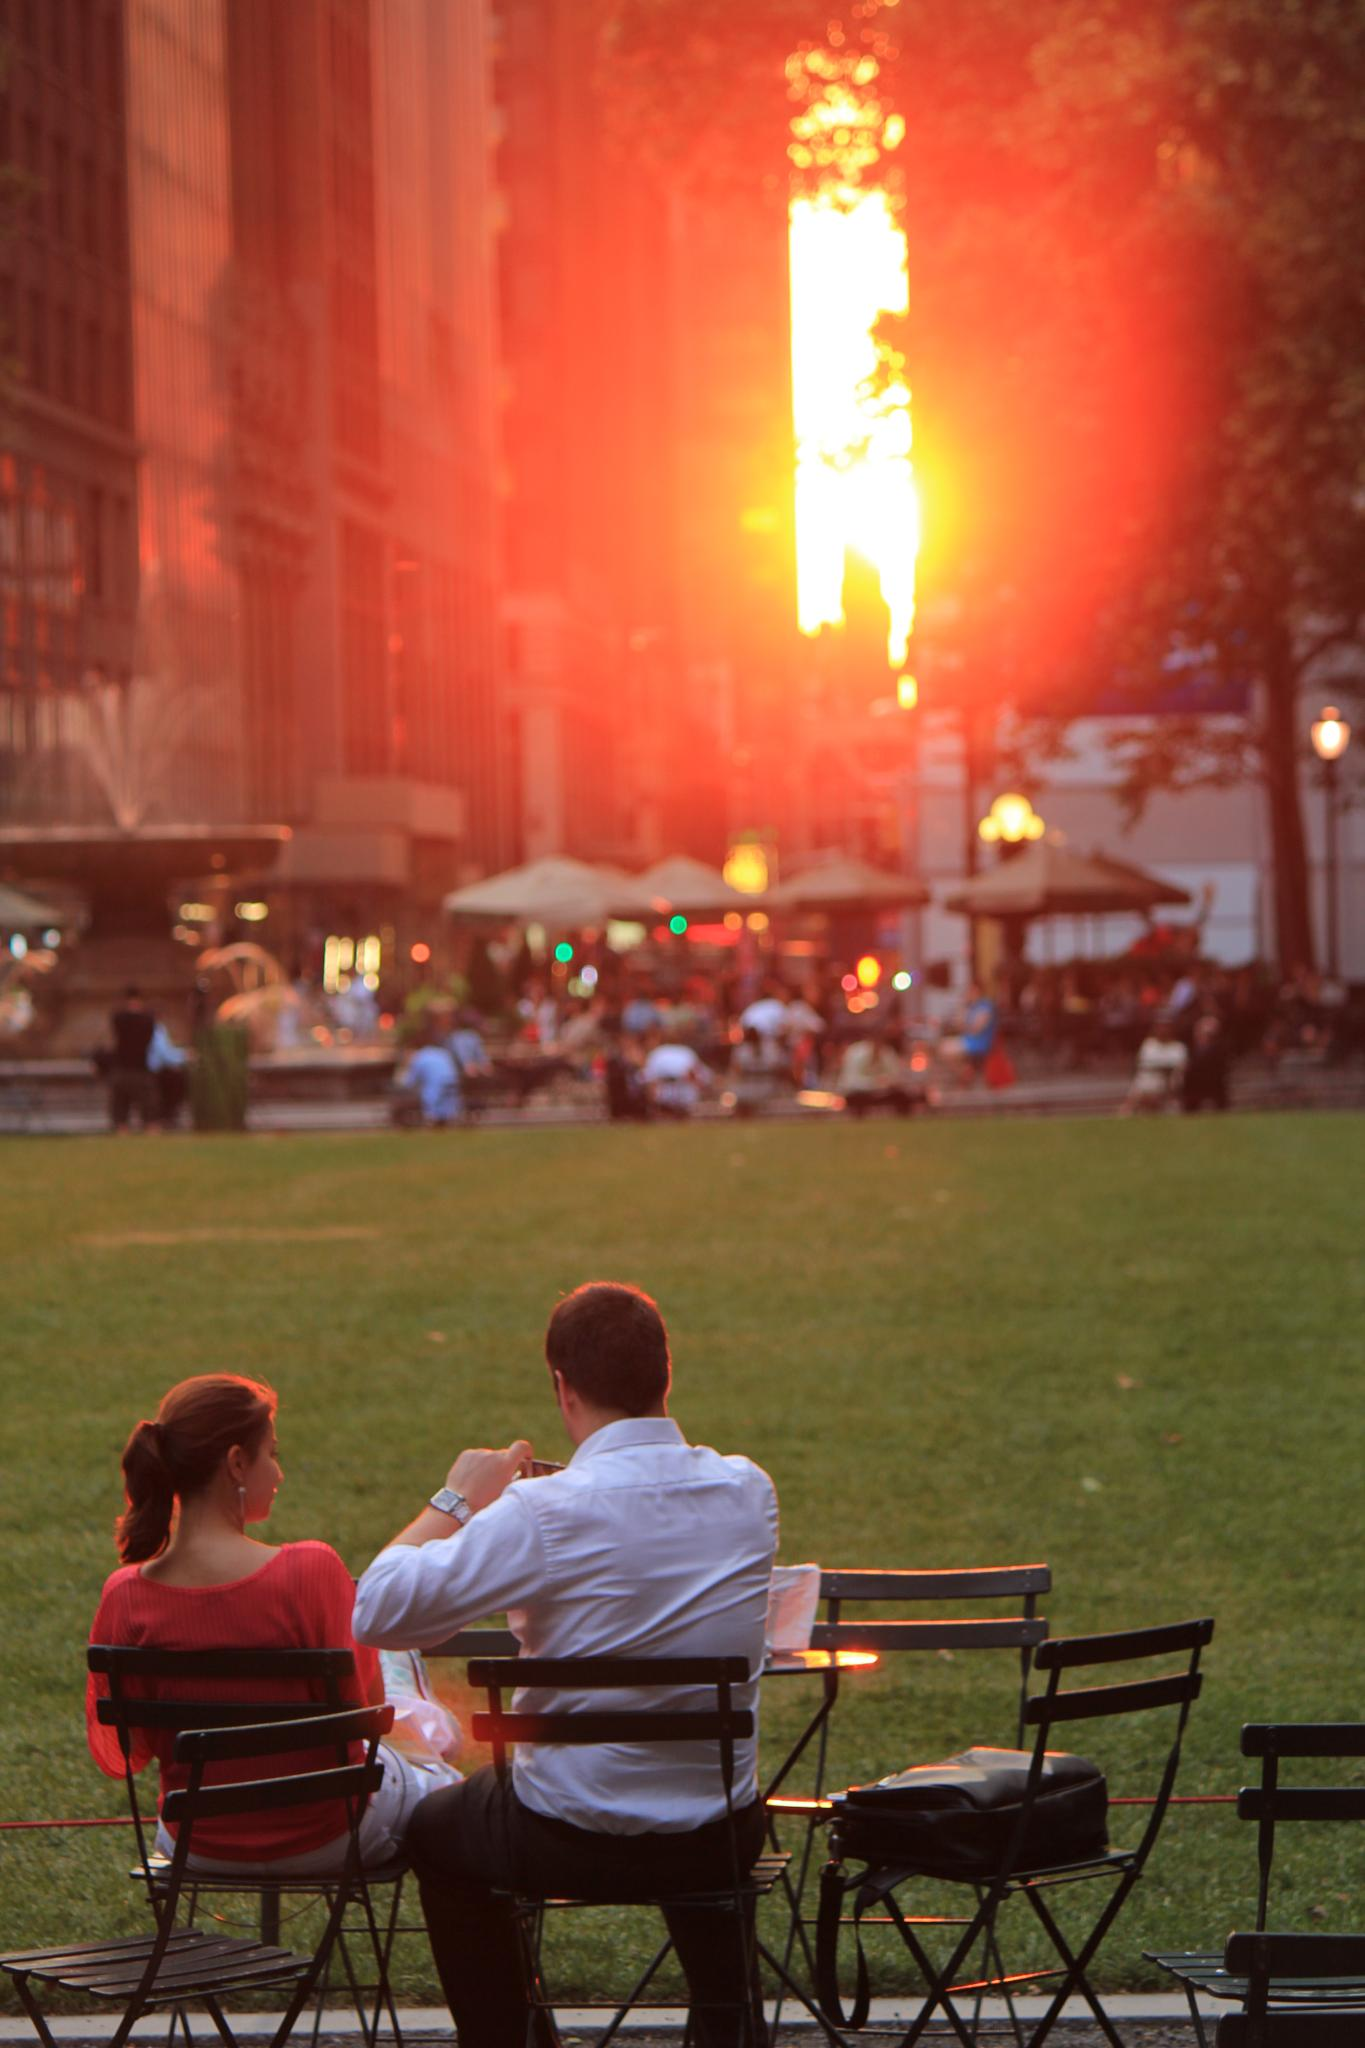 Once upon a time in Bryant Park, NYC by Steven Yun